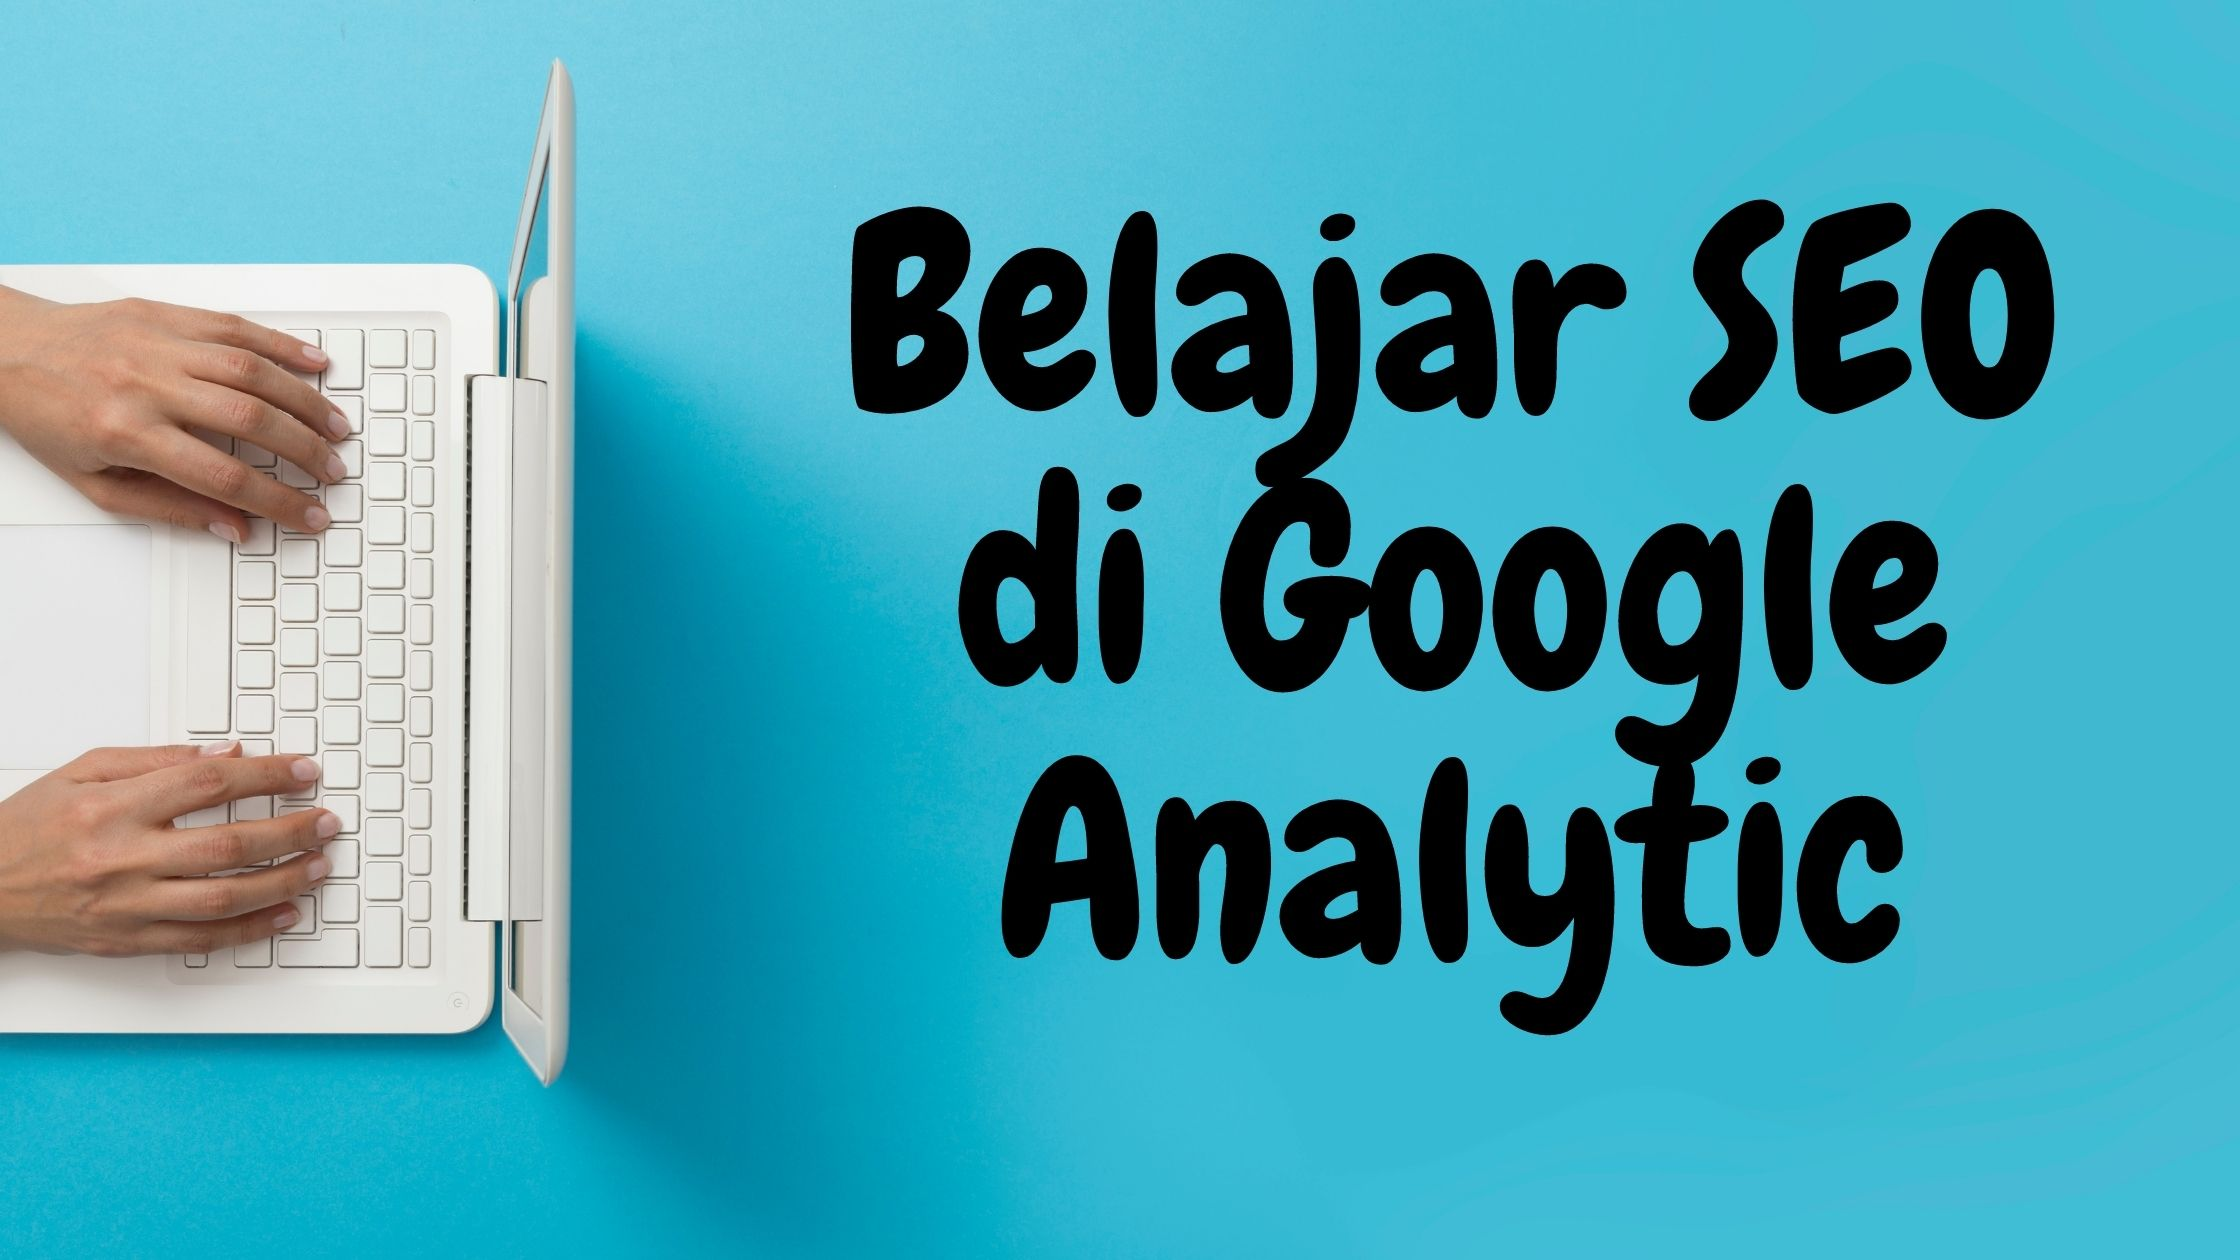 Belajar SEO di Google Analytic